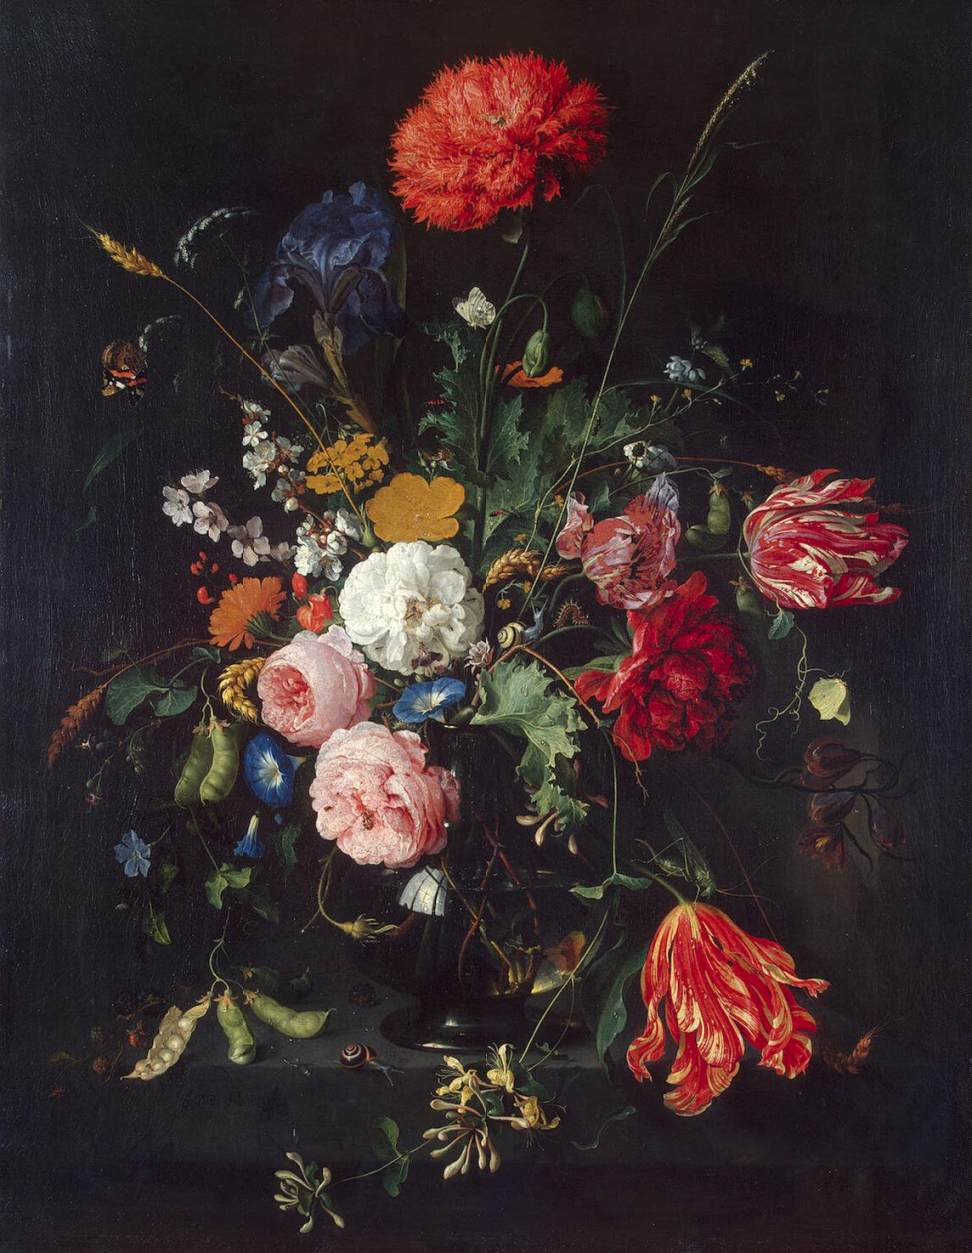 Wikimedia Commons & File:Jan Davidsz. de Heem - Vase of Flowers - WGA11290.jpg ...